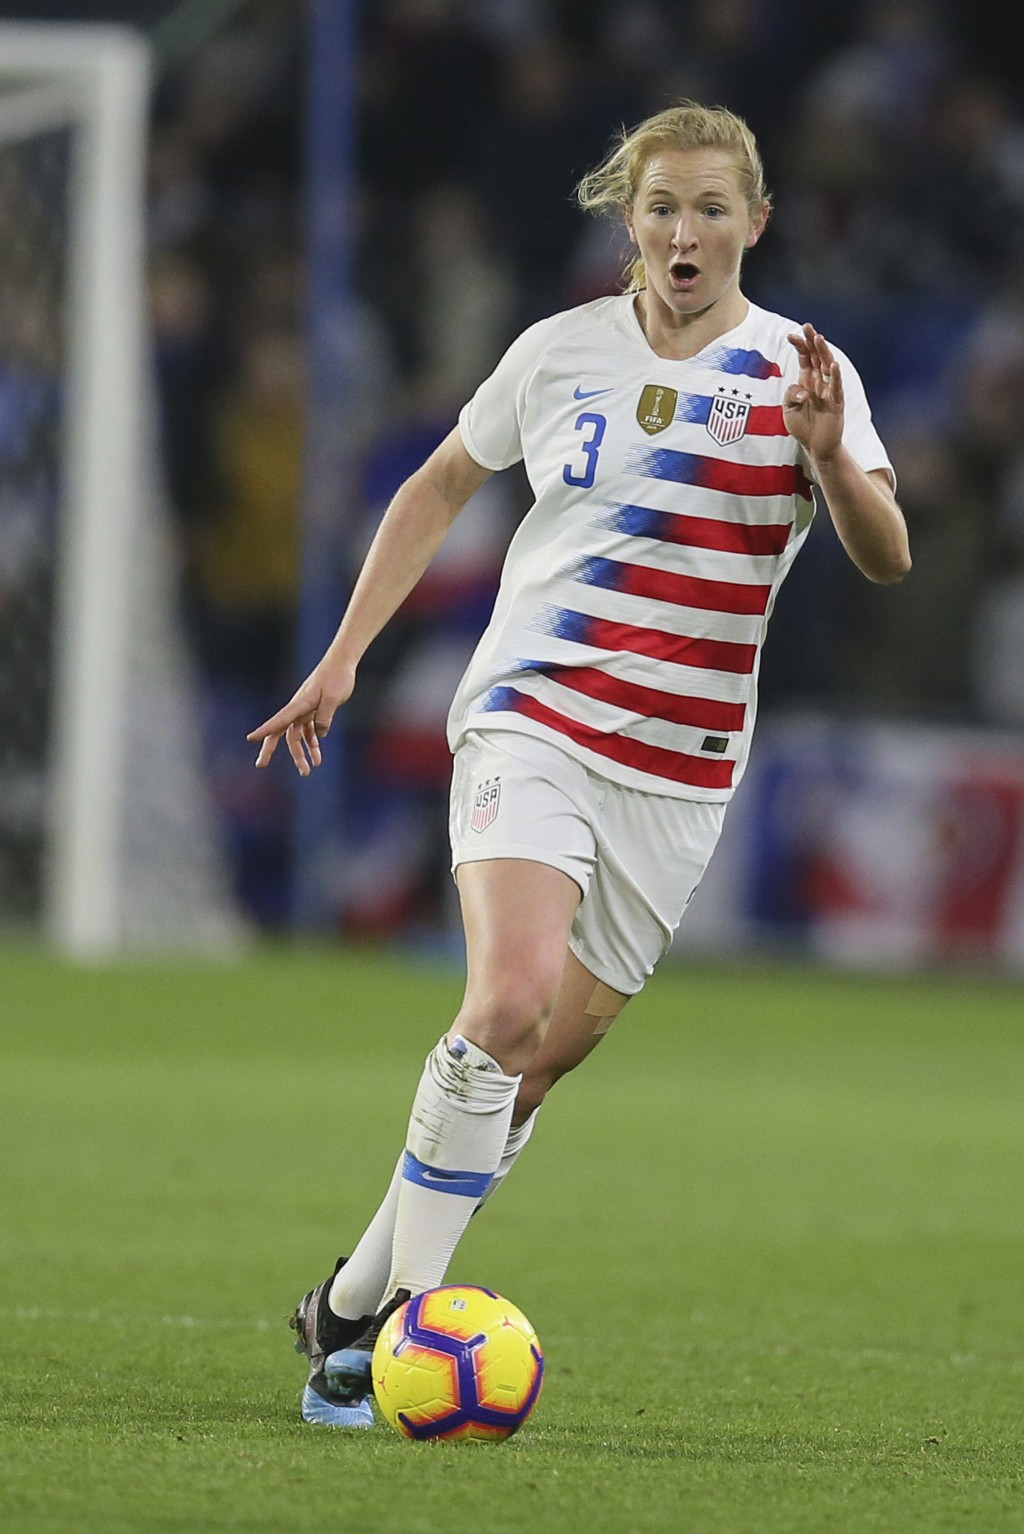 FILE - In this Jan. 19, 2019, file photo, United States midfielder Samantha Mewis, who plays for the North Carolina Courage of the National Women's So...